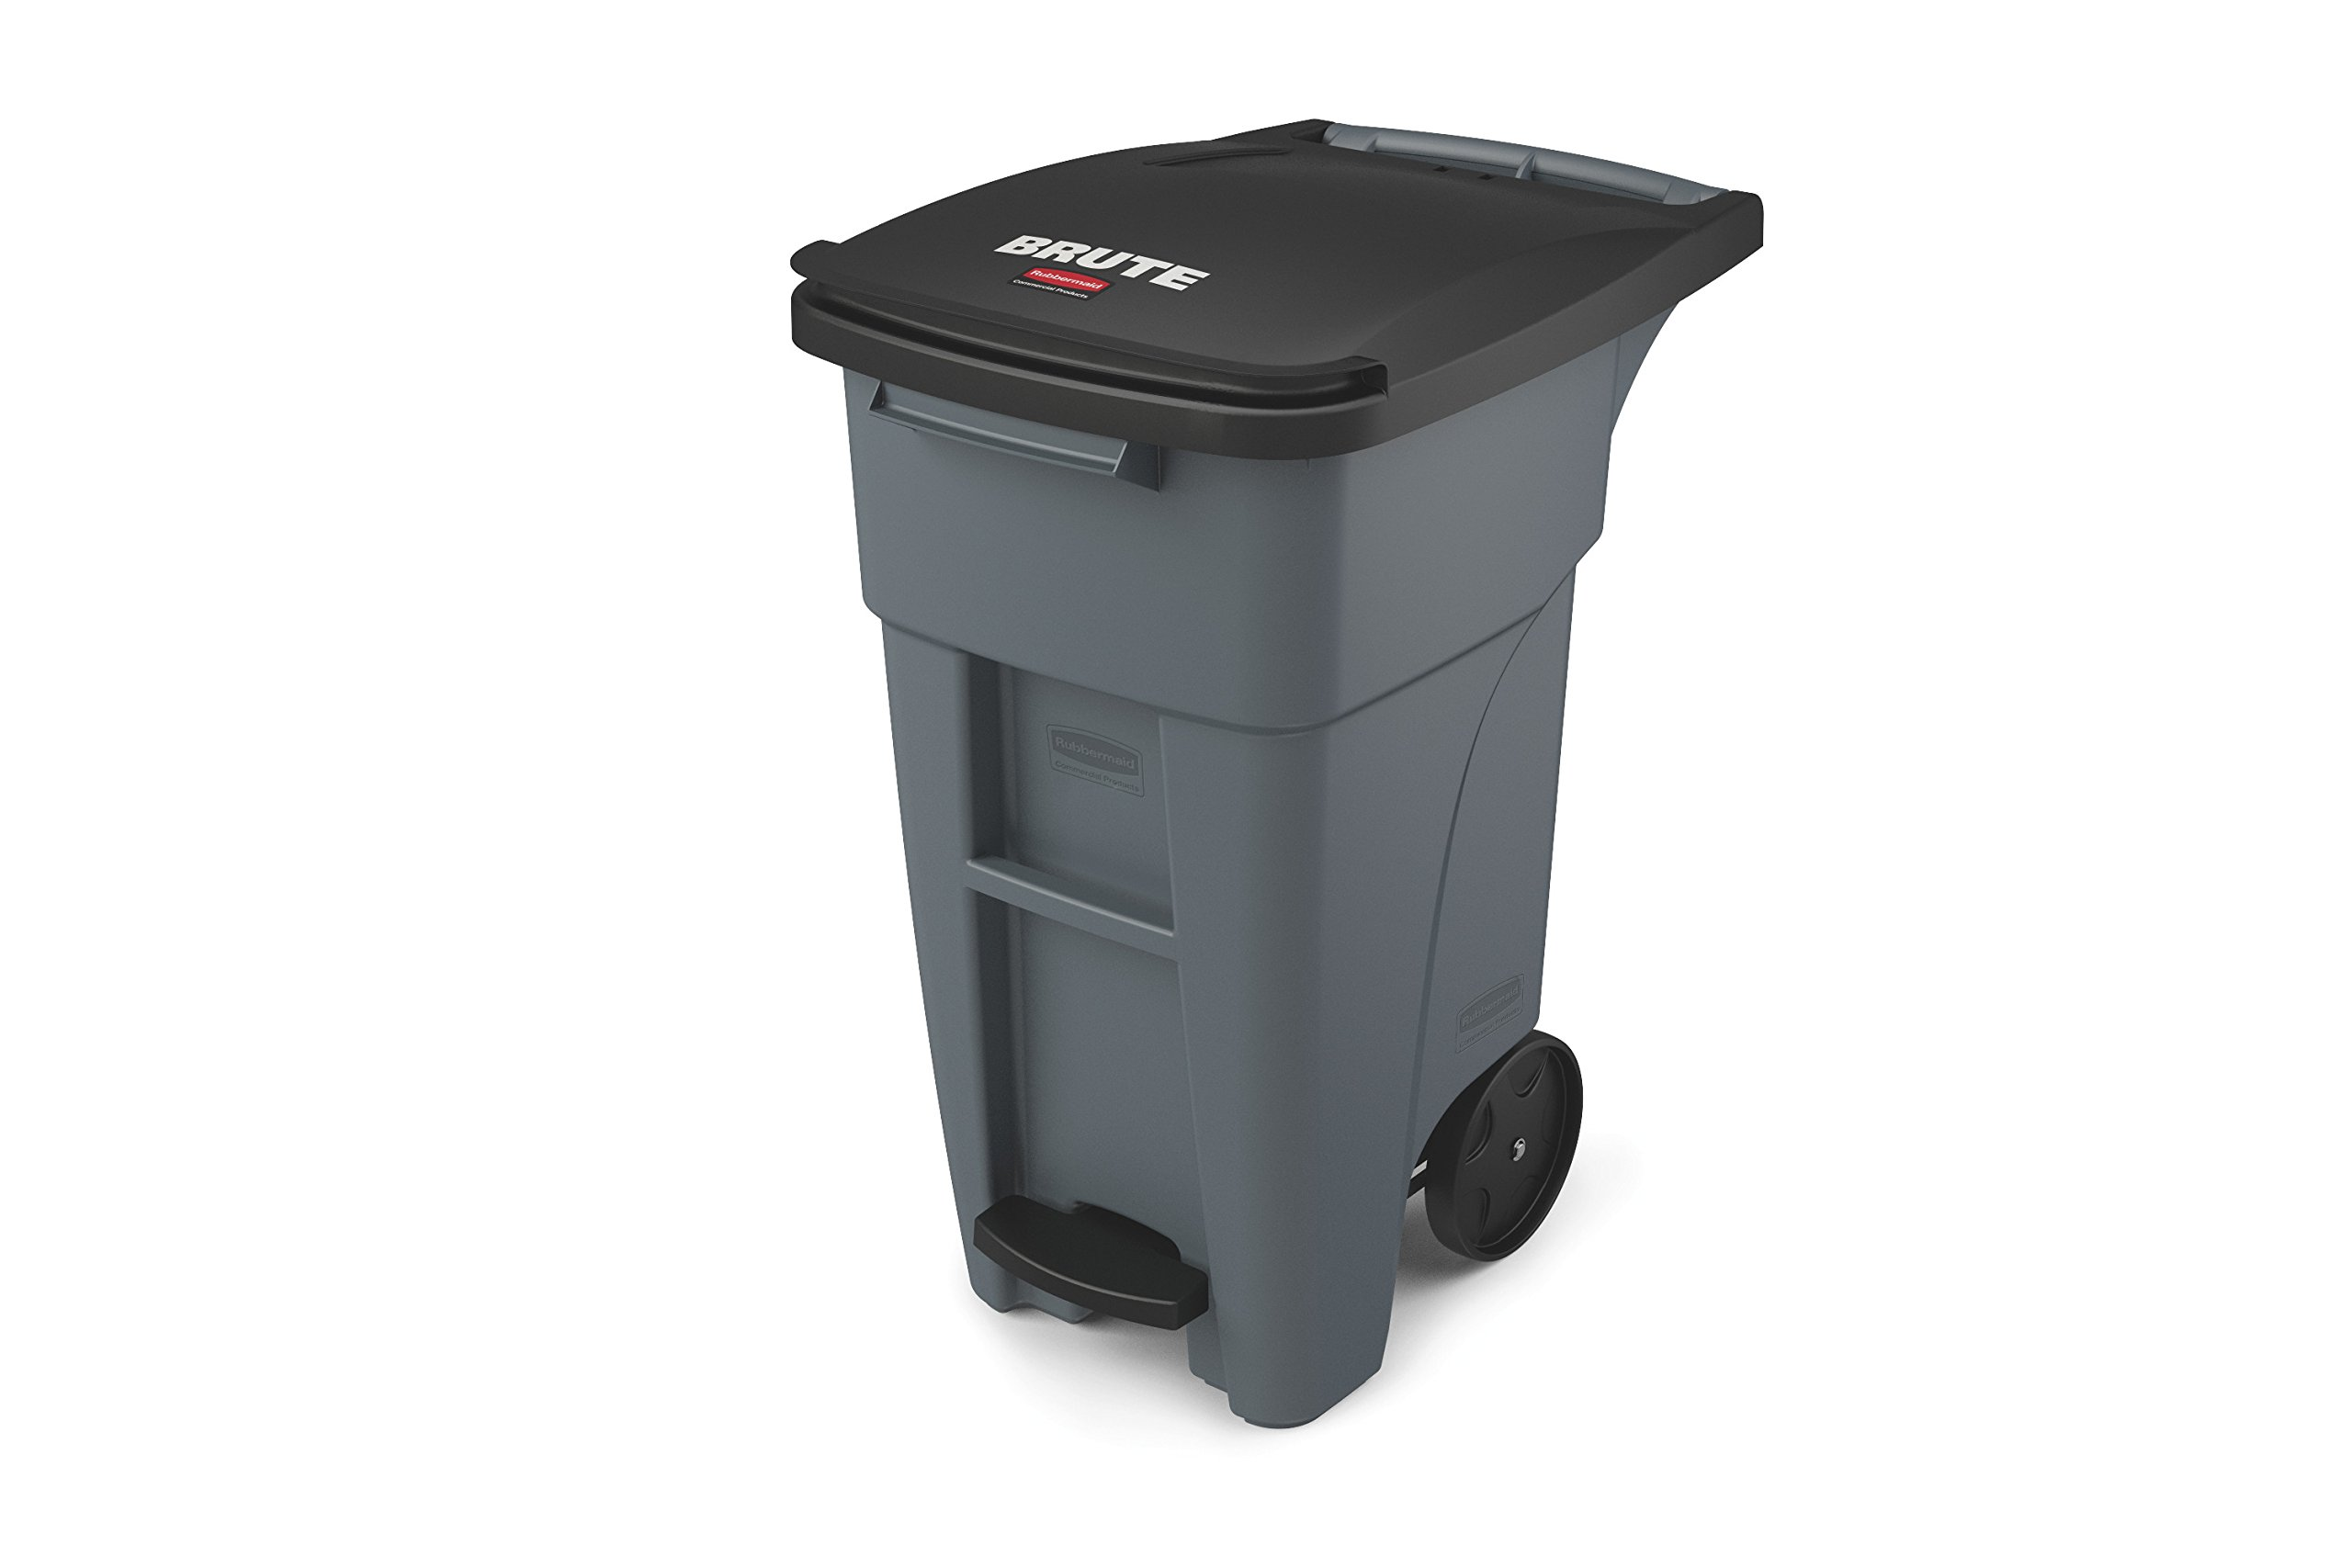 Rubbermaid Commercial Products BRUTE Rollout Step On Trash/Garbage Can, 32-gallon, Gray (1971944) by Rubbermaid Commercial Products